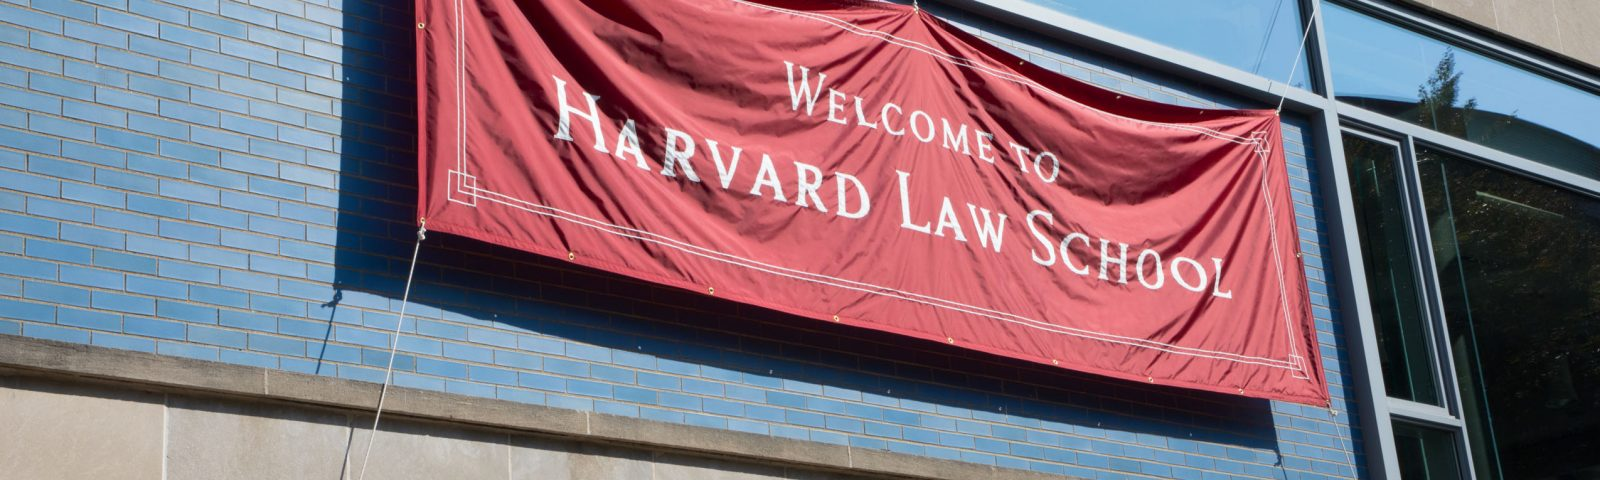 Welcome to Harvard Law School banner